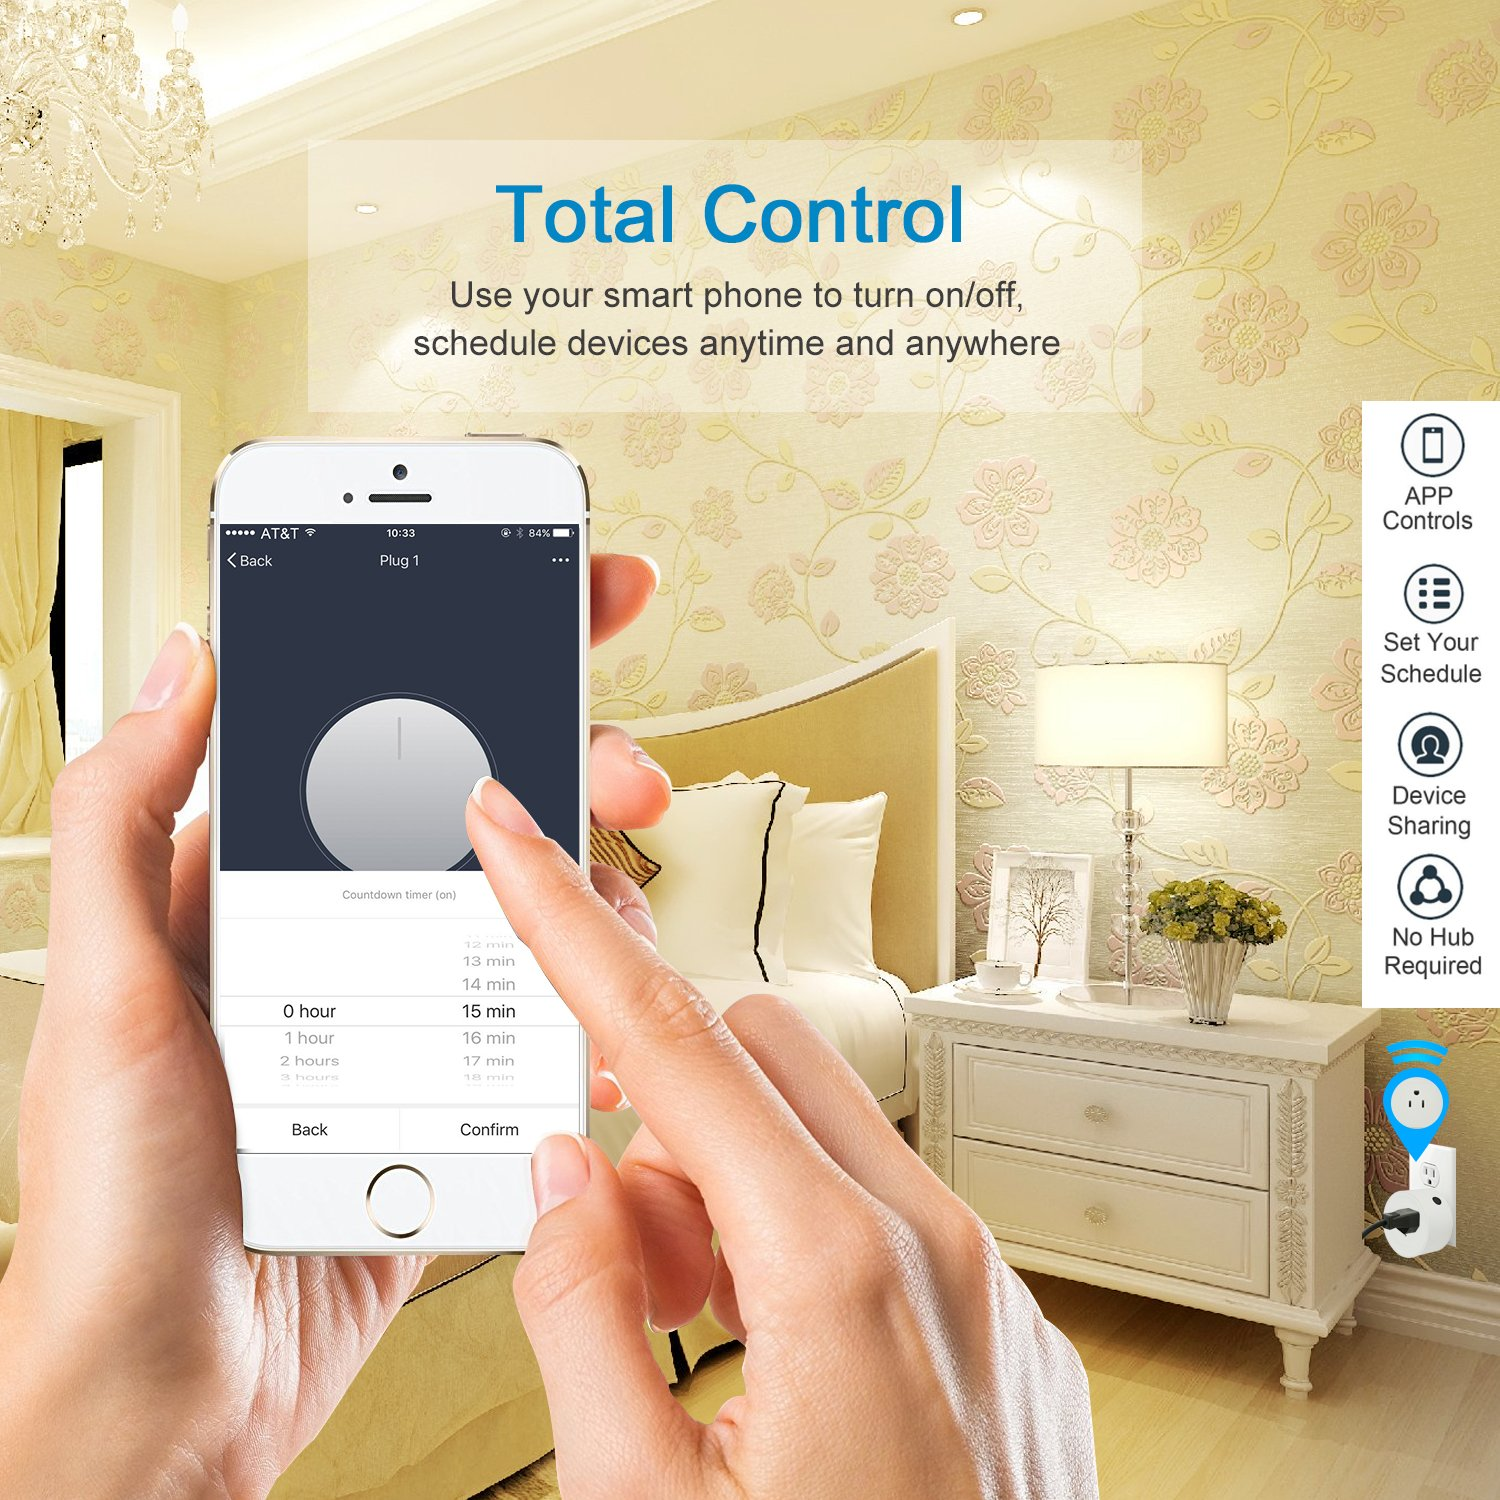 Martin Jerry mini Smart Plug Compatible with Alexa, Smart Home Devices Works with Google Home, No Hub required, Easy installation and App control Smart Switch On / Off / Timing (Model: V01) (2 Pack) by Martin Jerry (Image #5)